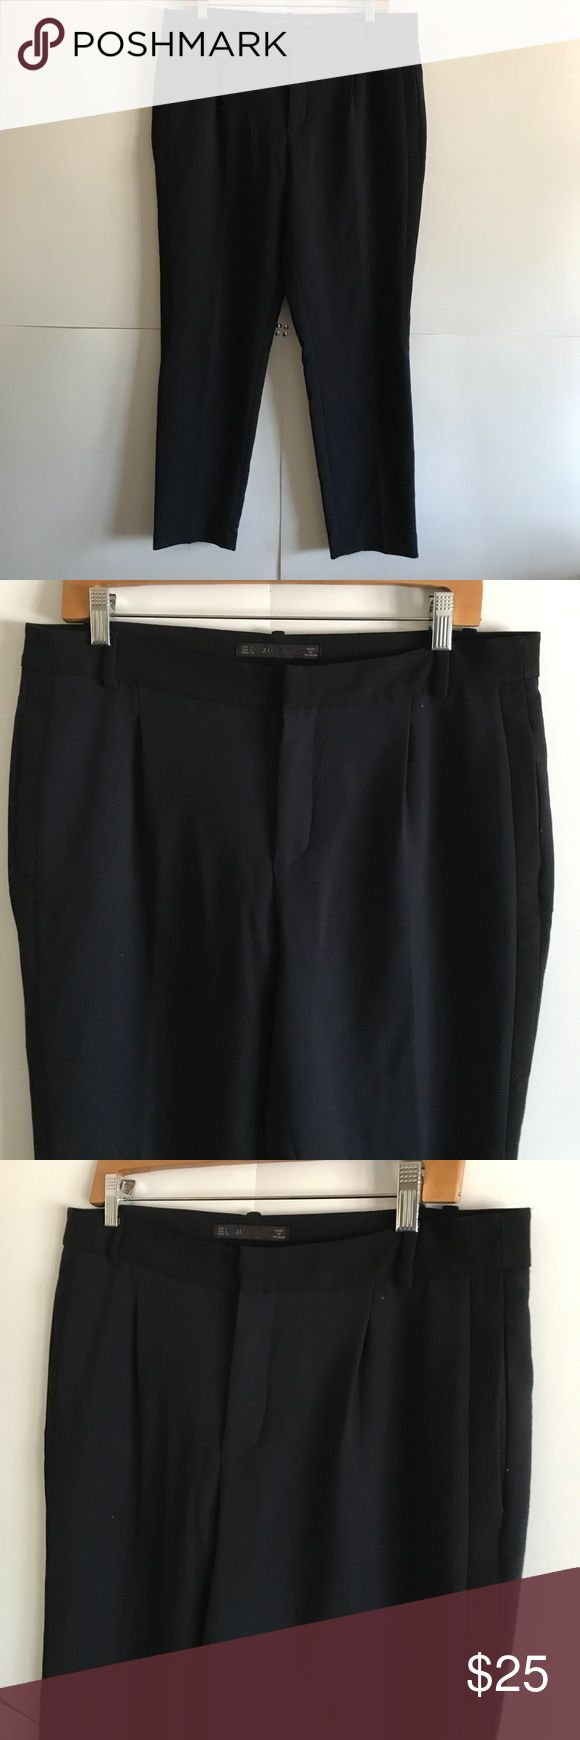 ZARA Navy Blue Dress Pants Size Large In great condition! Have pinstripe on the side that comes down halfway. Perfect for the office! Zara Pants Ankle & Cropped